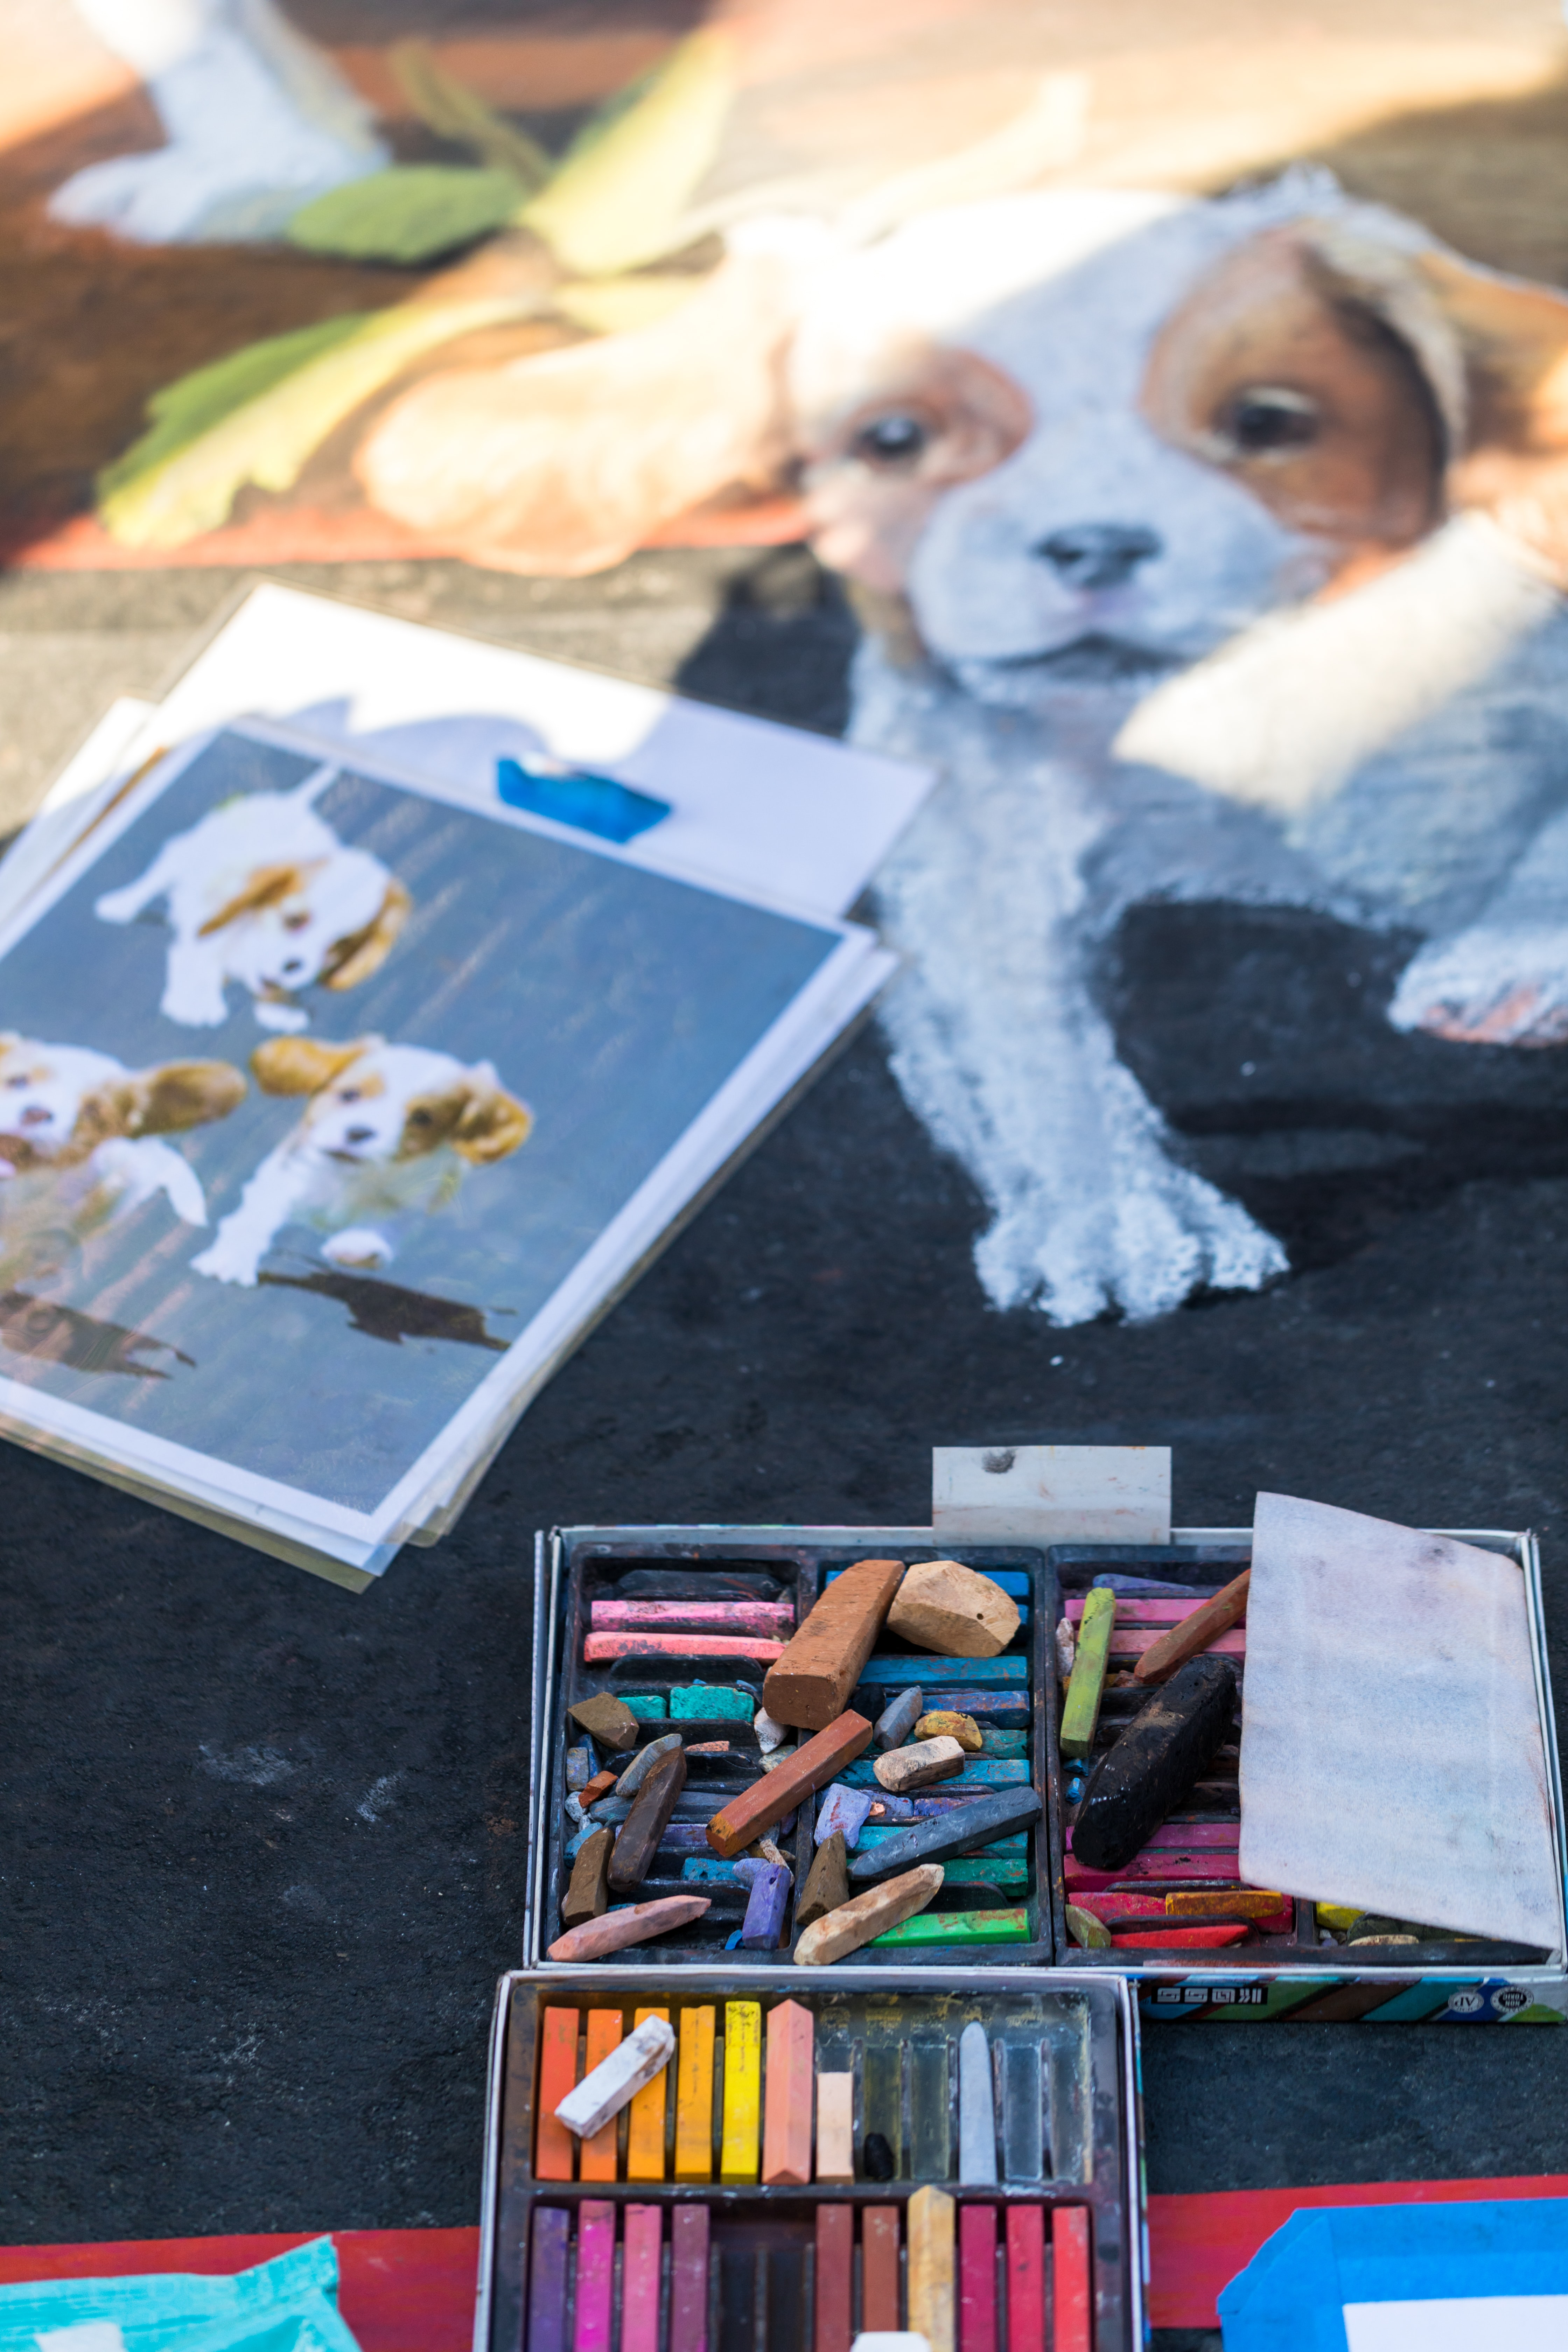 drawing of puppies beside coloring materials